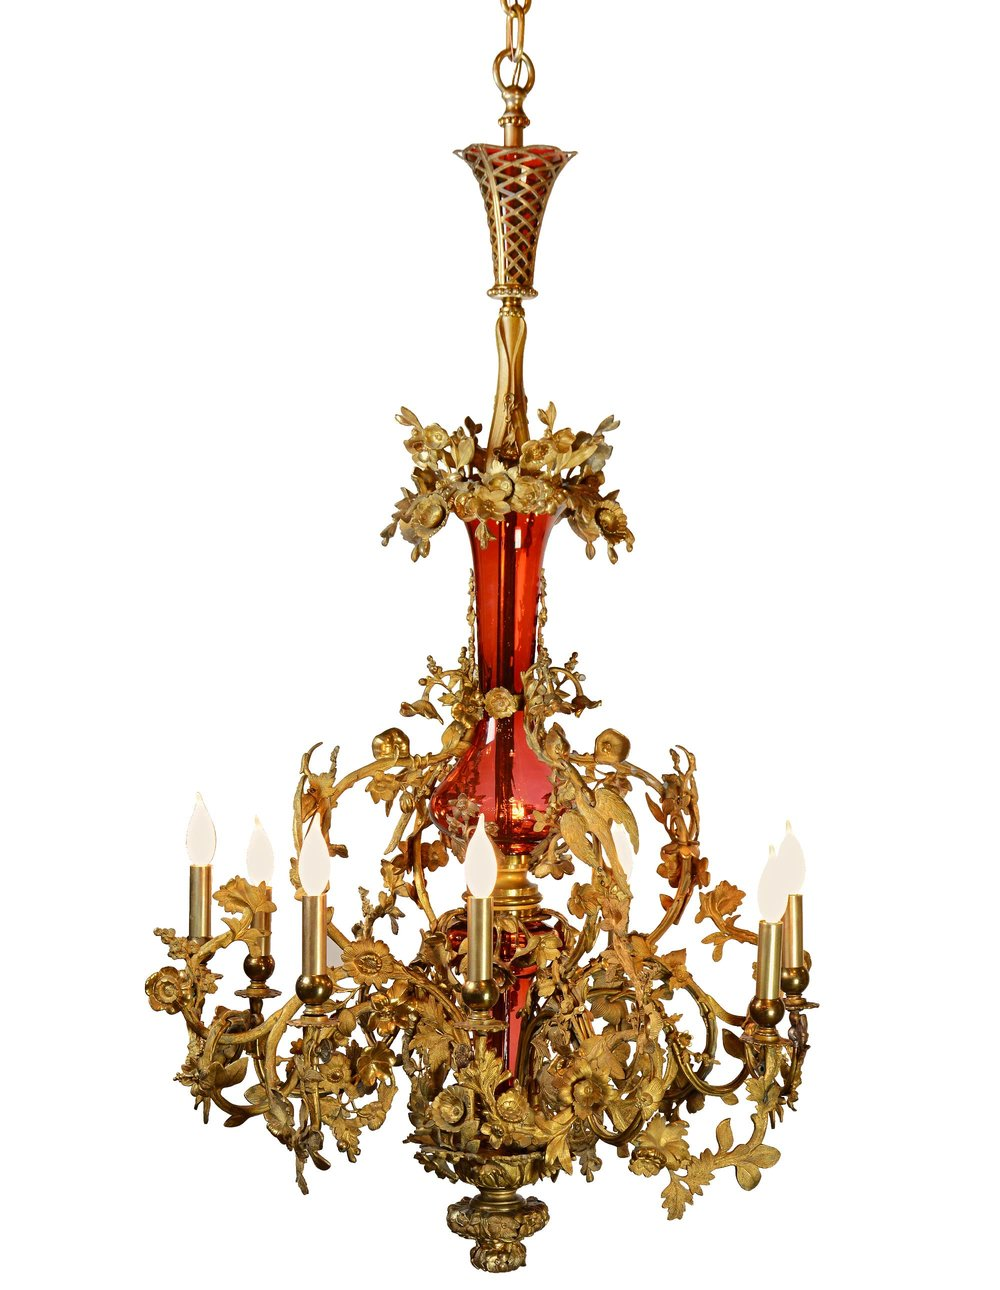 46245-ornate-brass-and-cranberry-glass-fixture-lit.jpg